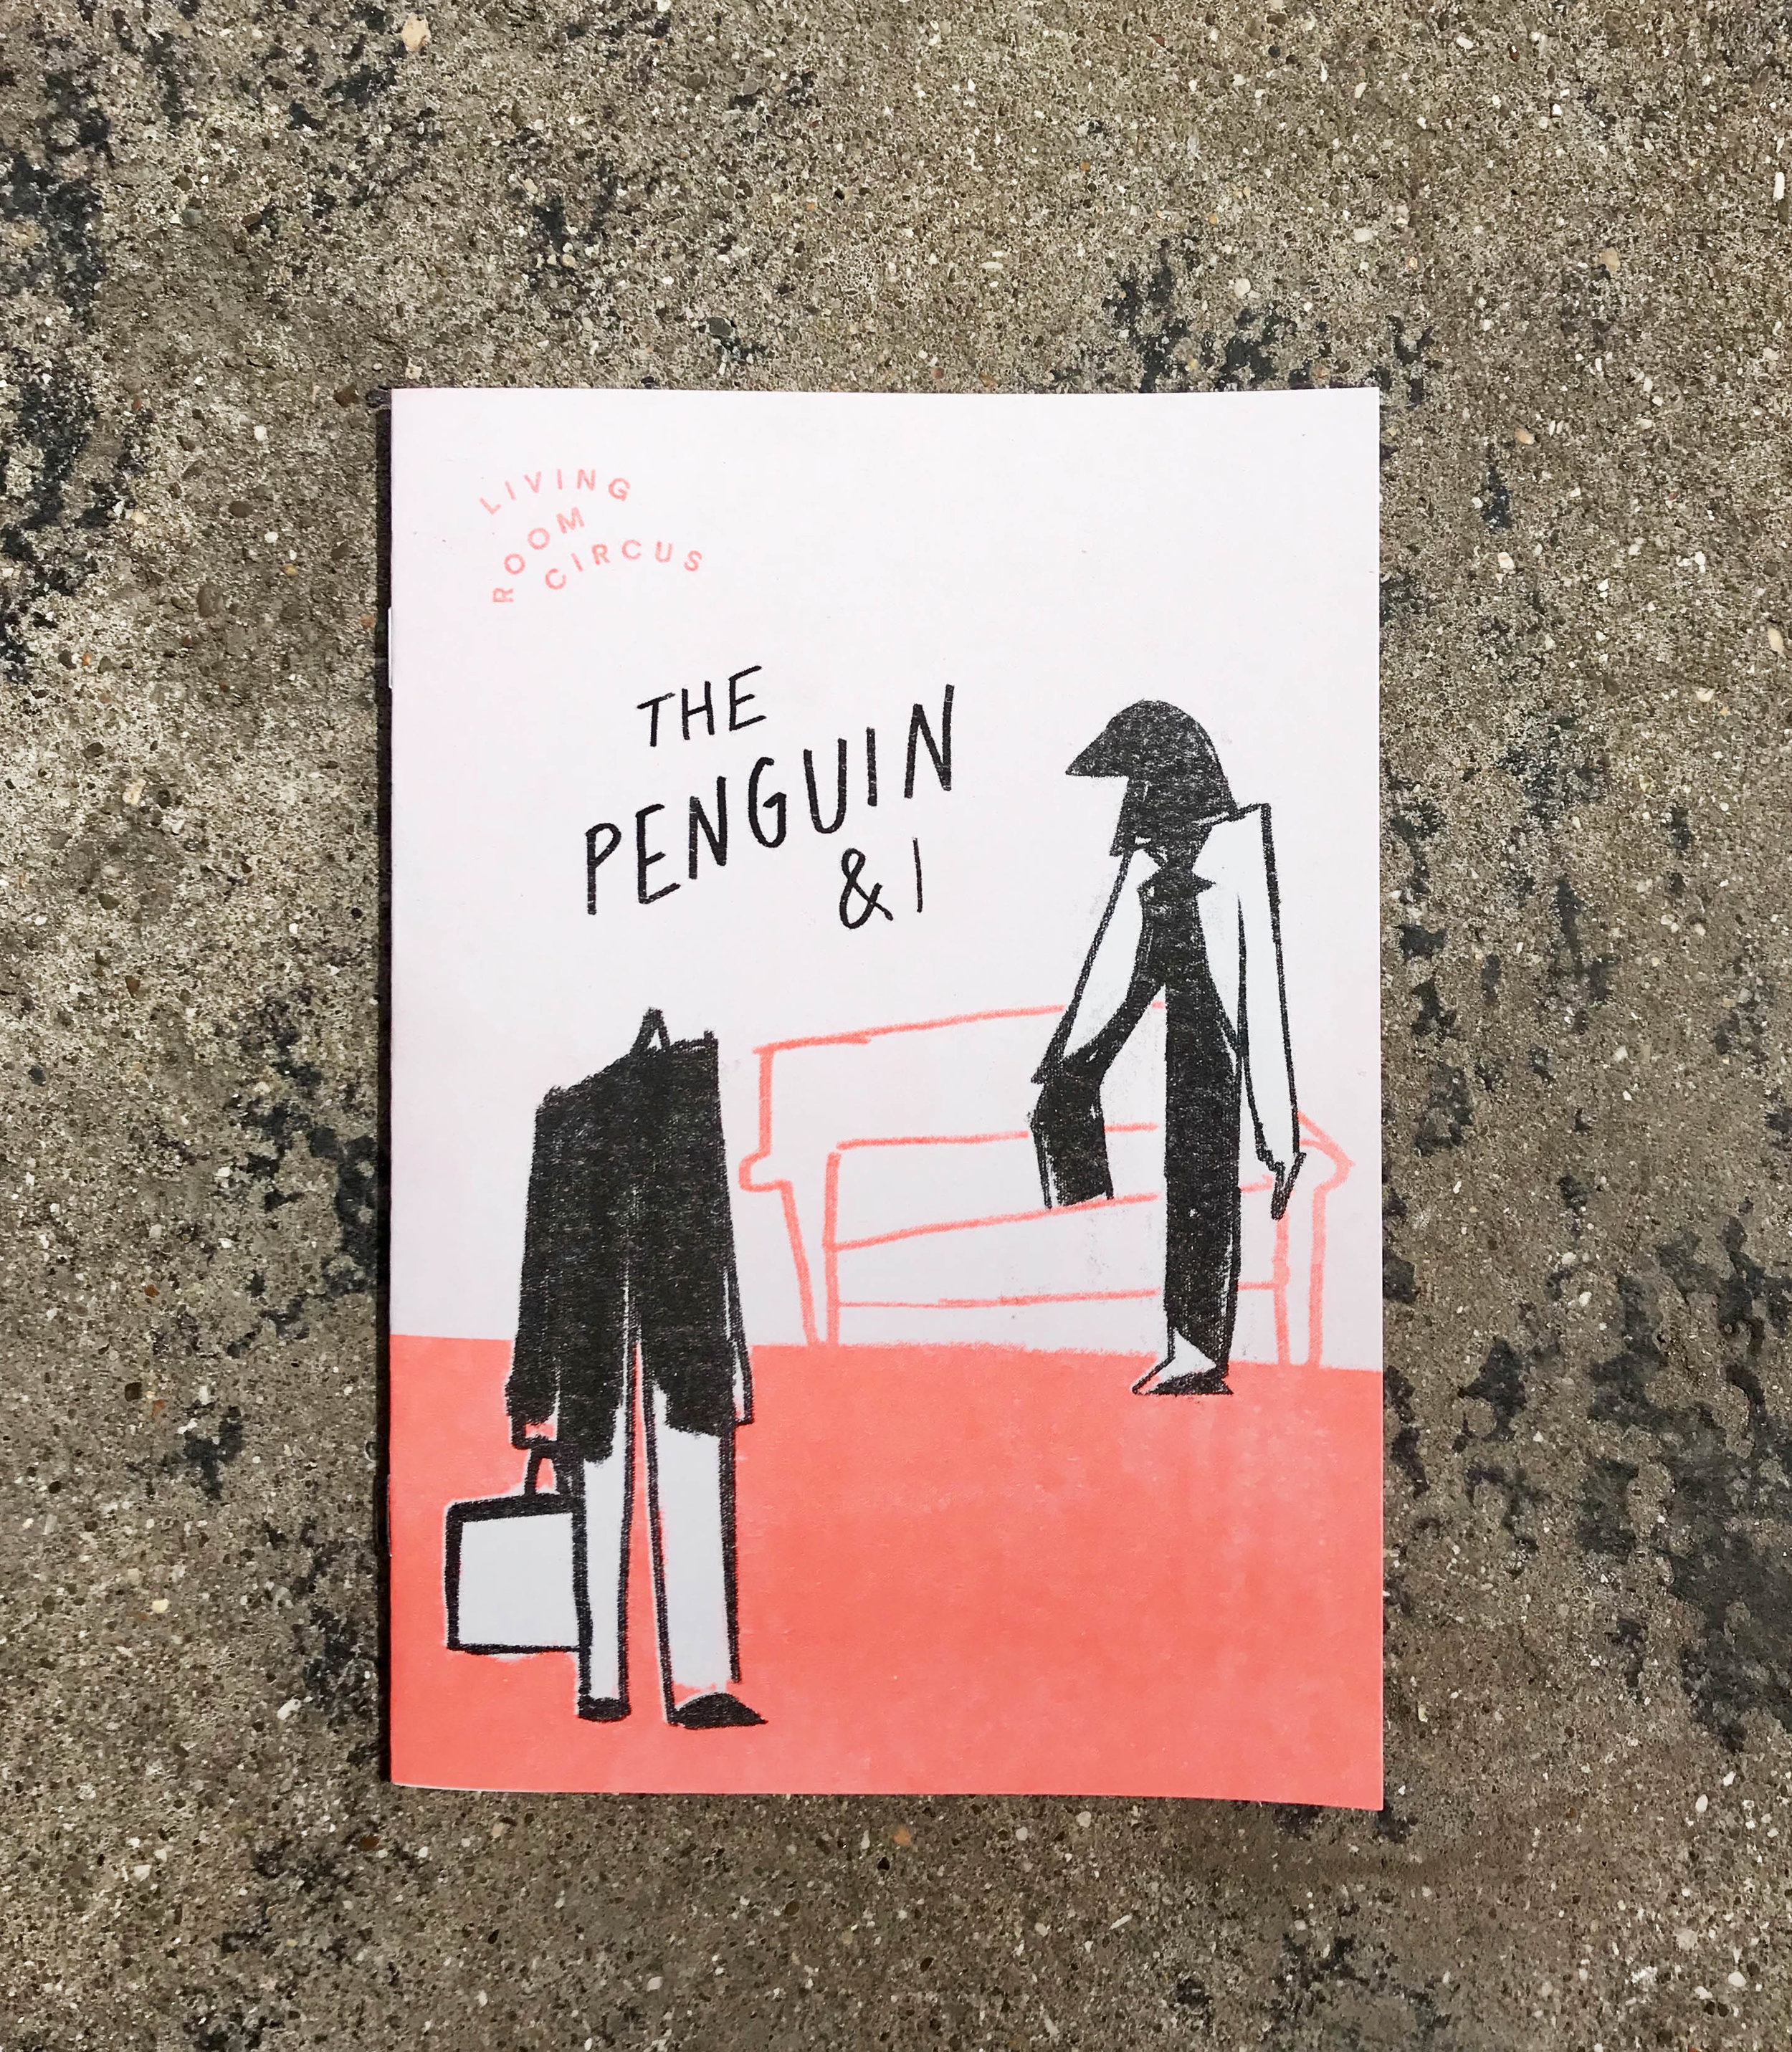 Living Room Circus Programme - I created an eight-page programme that had to be as absurd as The Penguin & I show. Interactive bingo? Check. Recipe for Penguin Punch? Check. Penguin walking into a sofa? Check. The programme was printed as a two-colour riso print with Assembly Press.